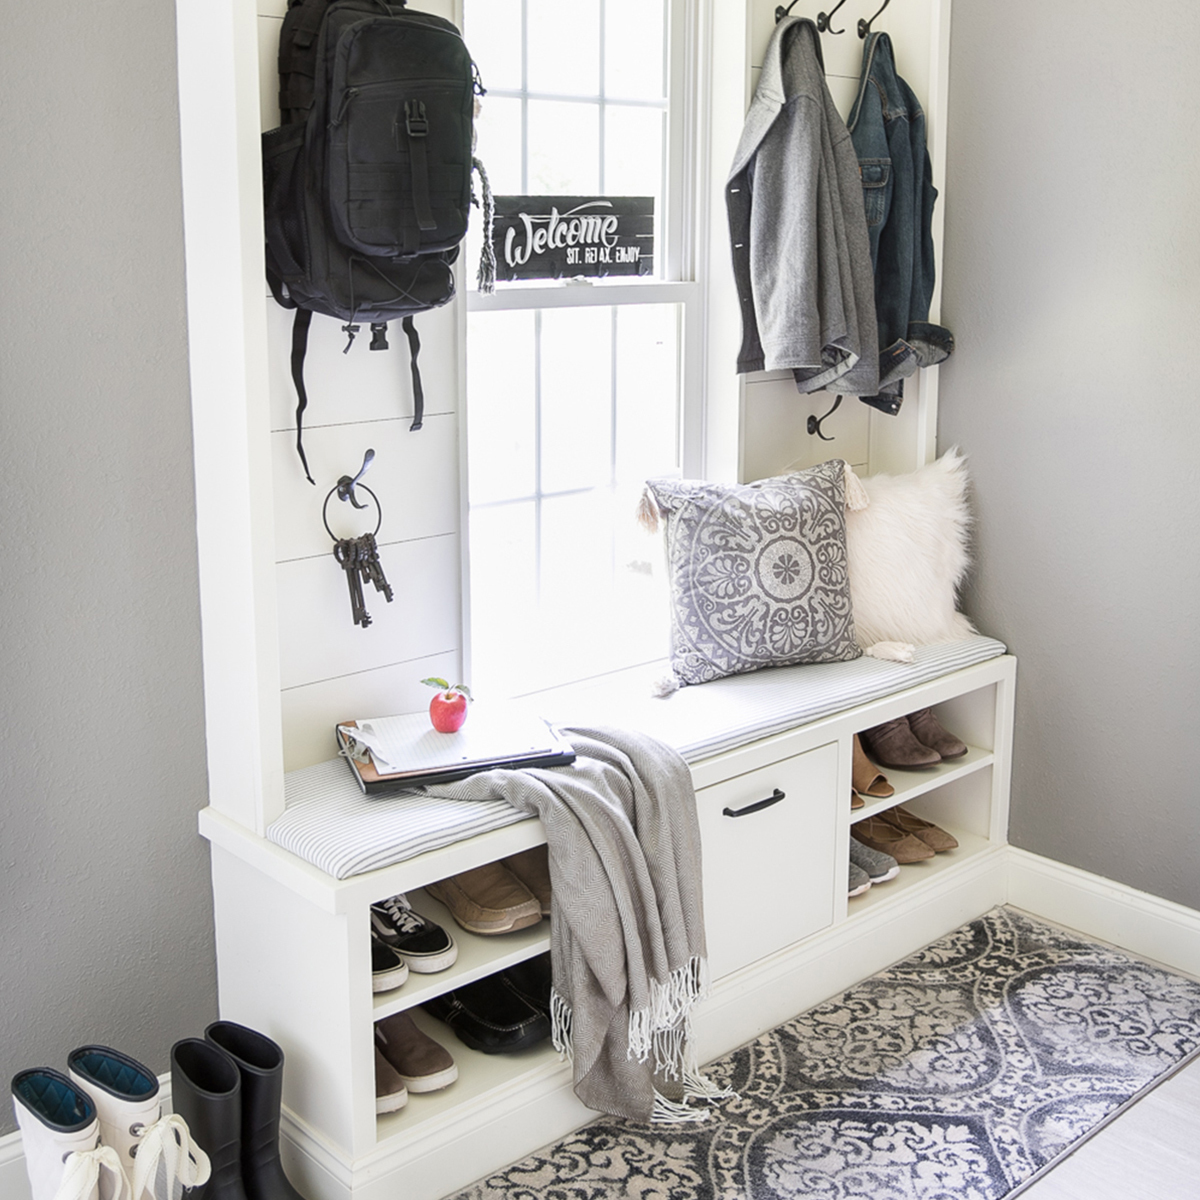 Turn your mudroom into an stylish alcove with a distressed area rug and soft woven fringe throw. photo